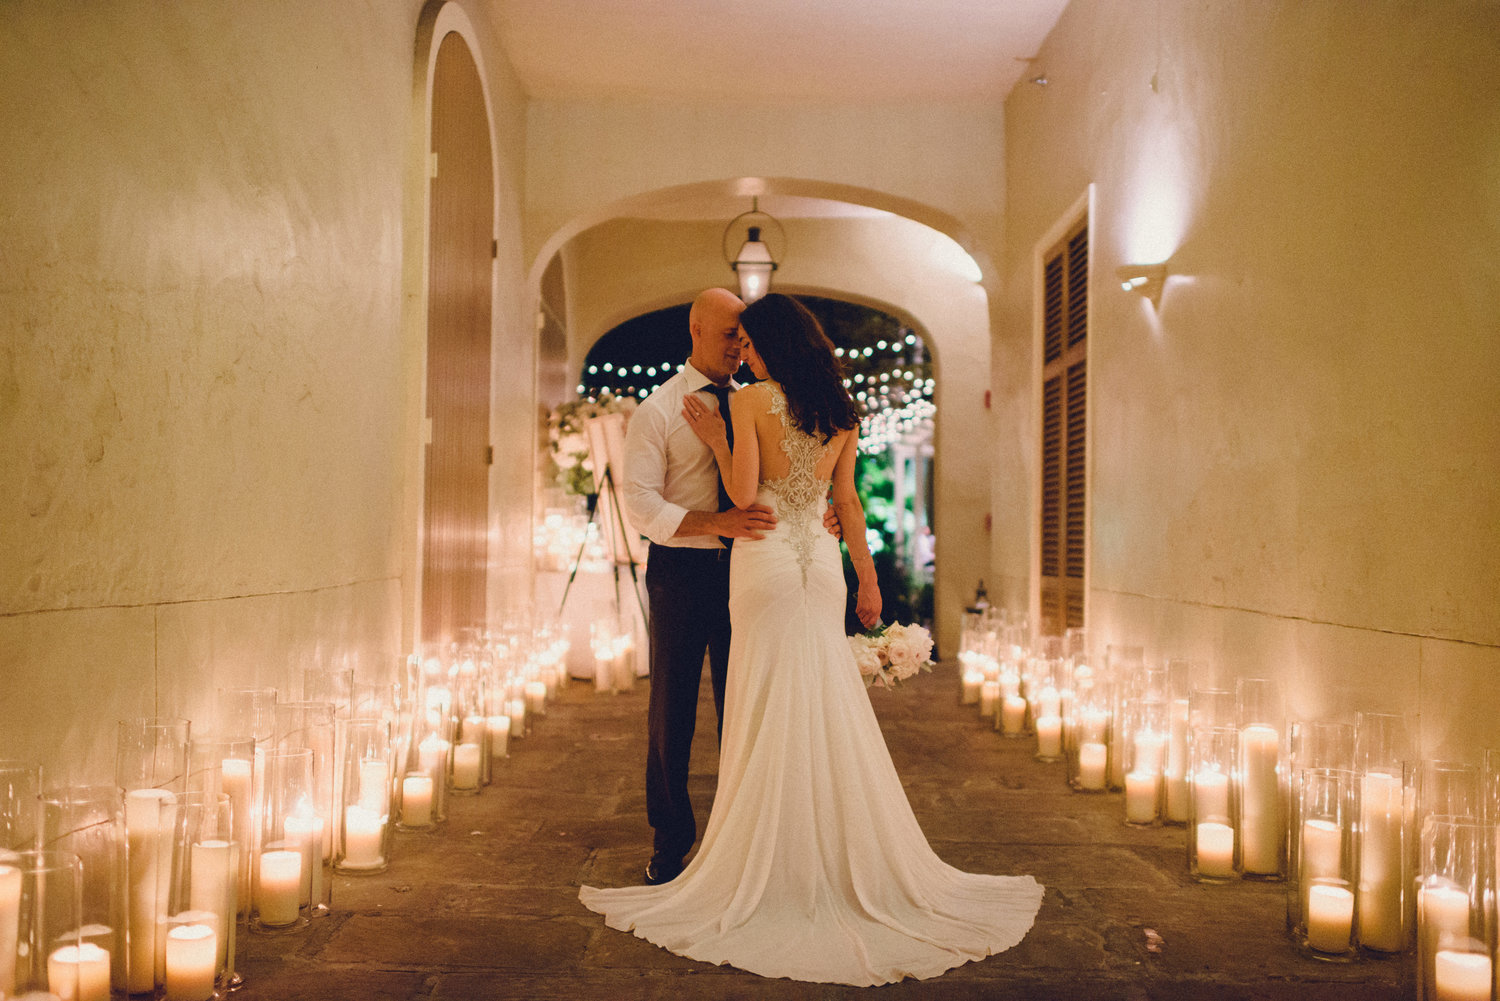 newlyweds embrace in carriageway of a courtyard surrounded by hundreds of candles in wedding gown and suit